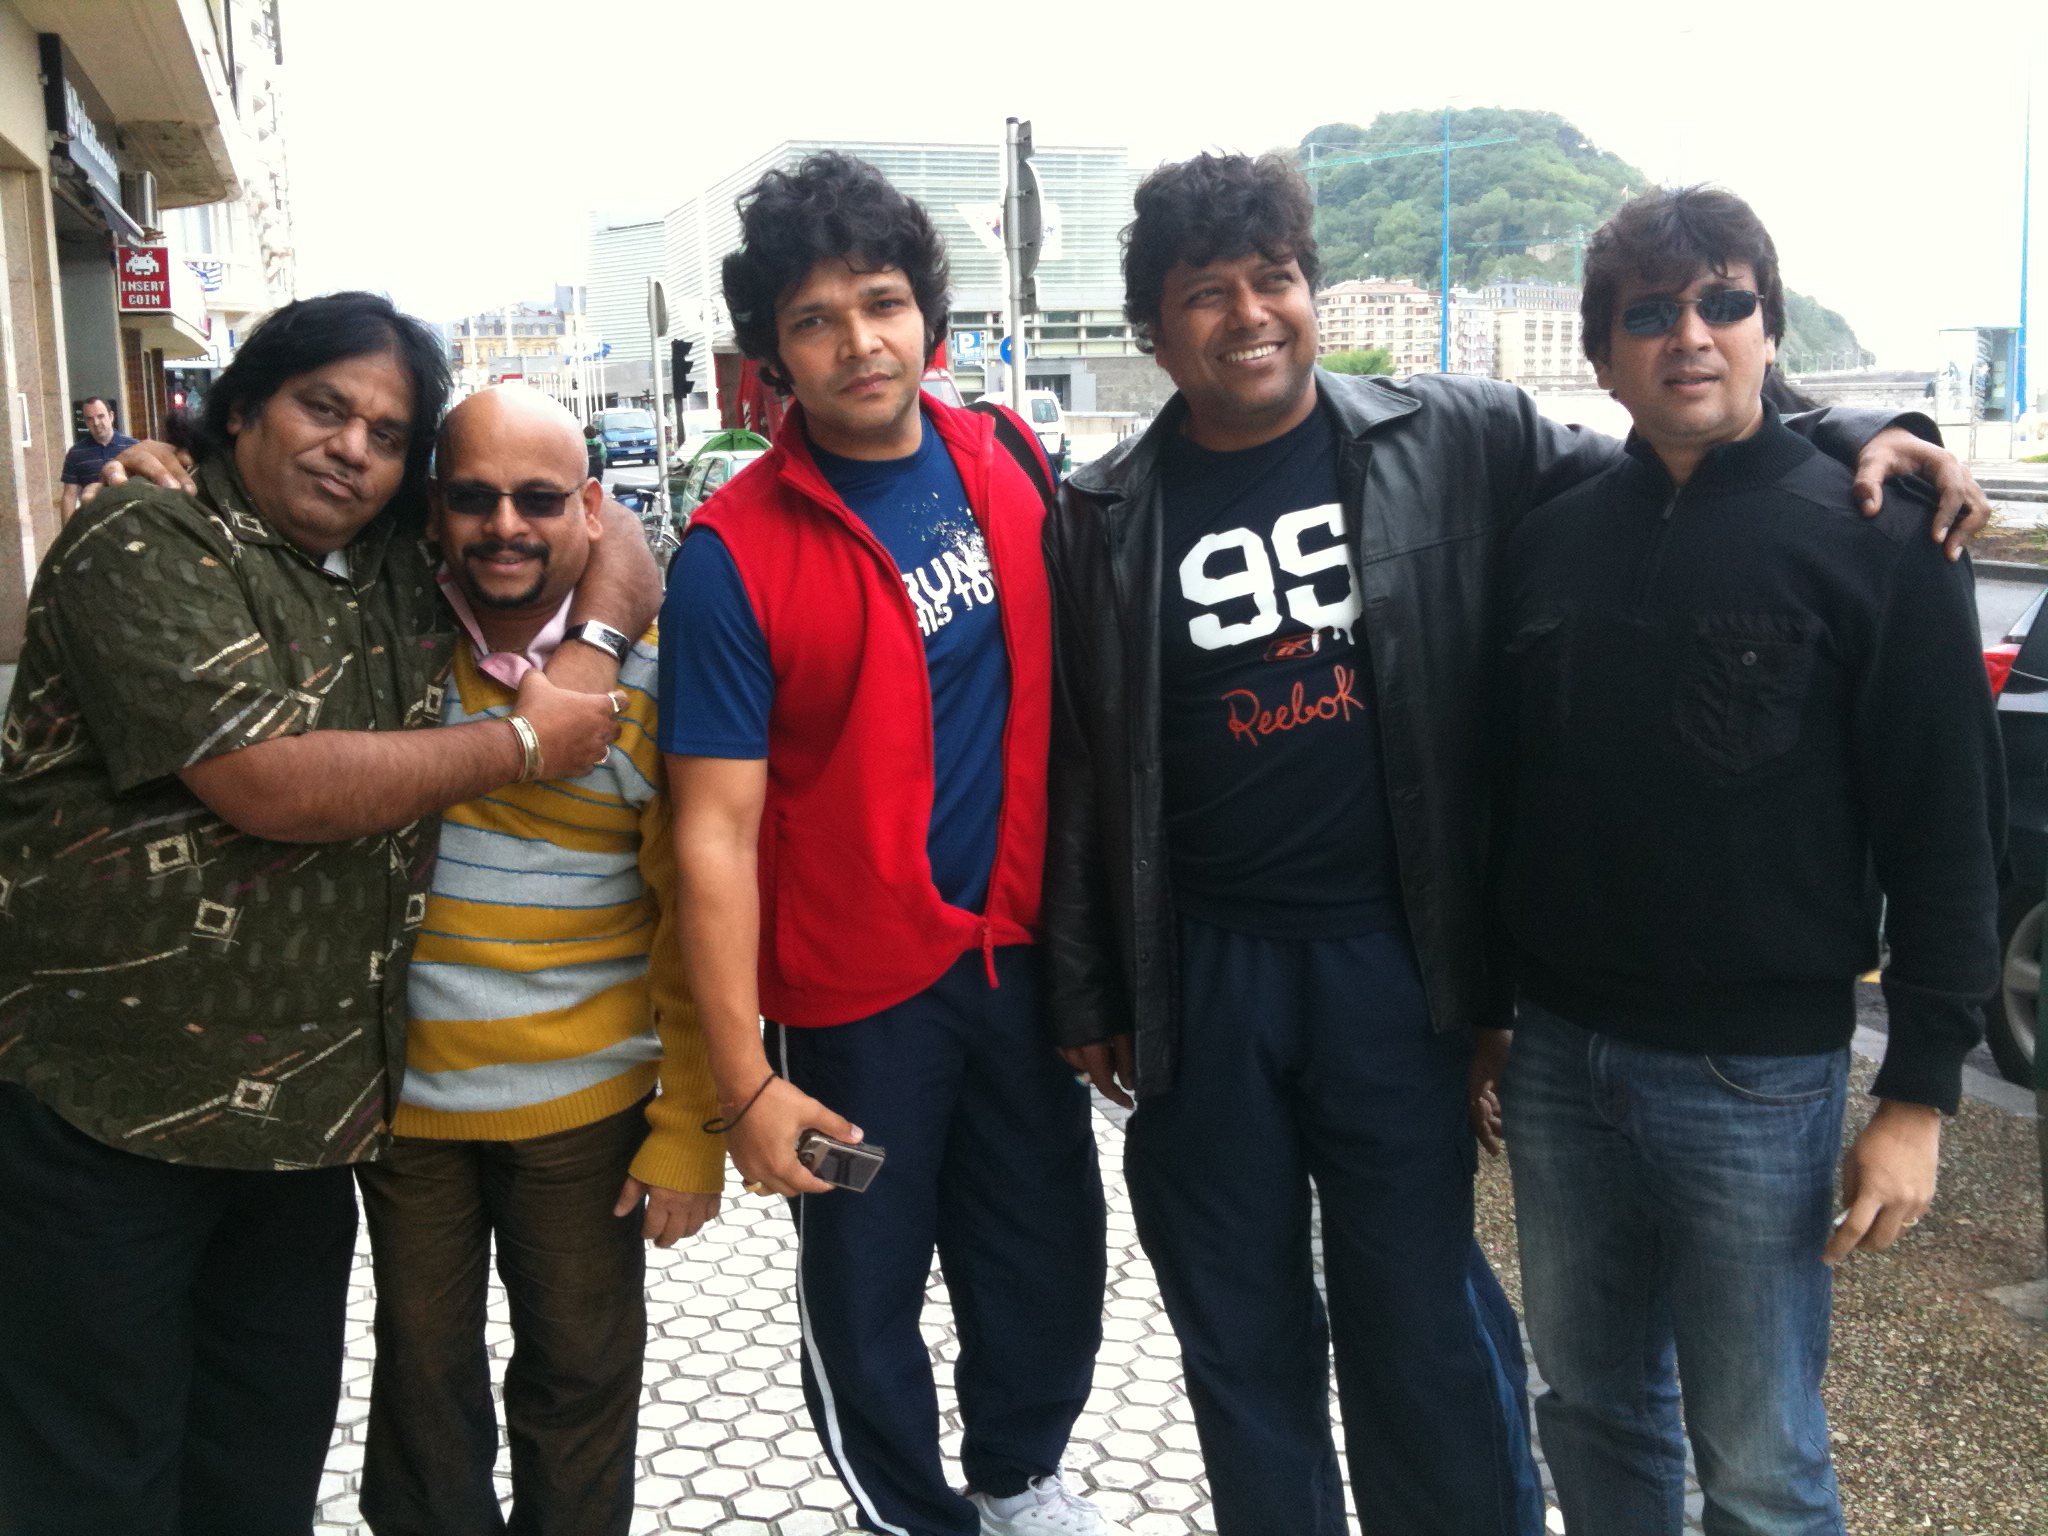 """The Sacred Drums of India"" (tour in Spain with Igor) … from left to right: Suresh Vidyanathan (gatam), Rakesh Chaurasia (bansuri flute), Shubankhar Banerjee (tabla) Gopal Barman (srikhol)"